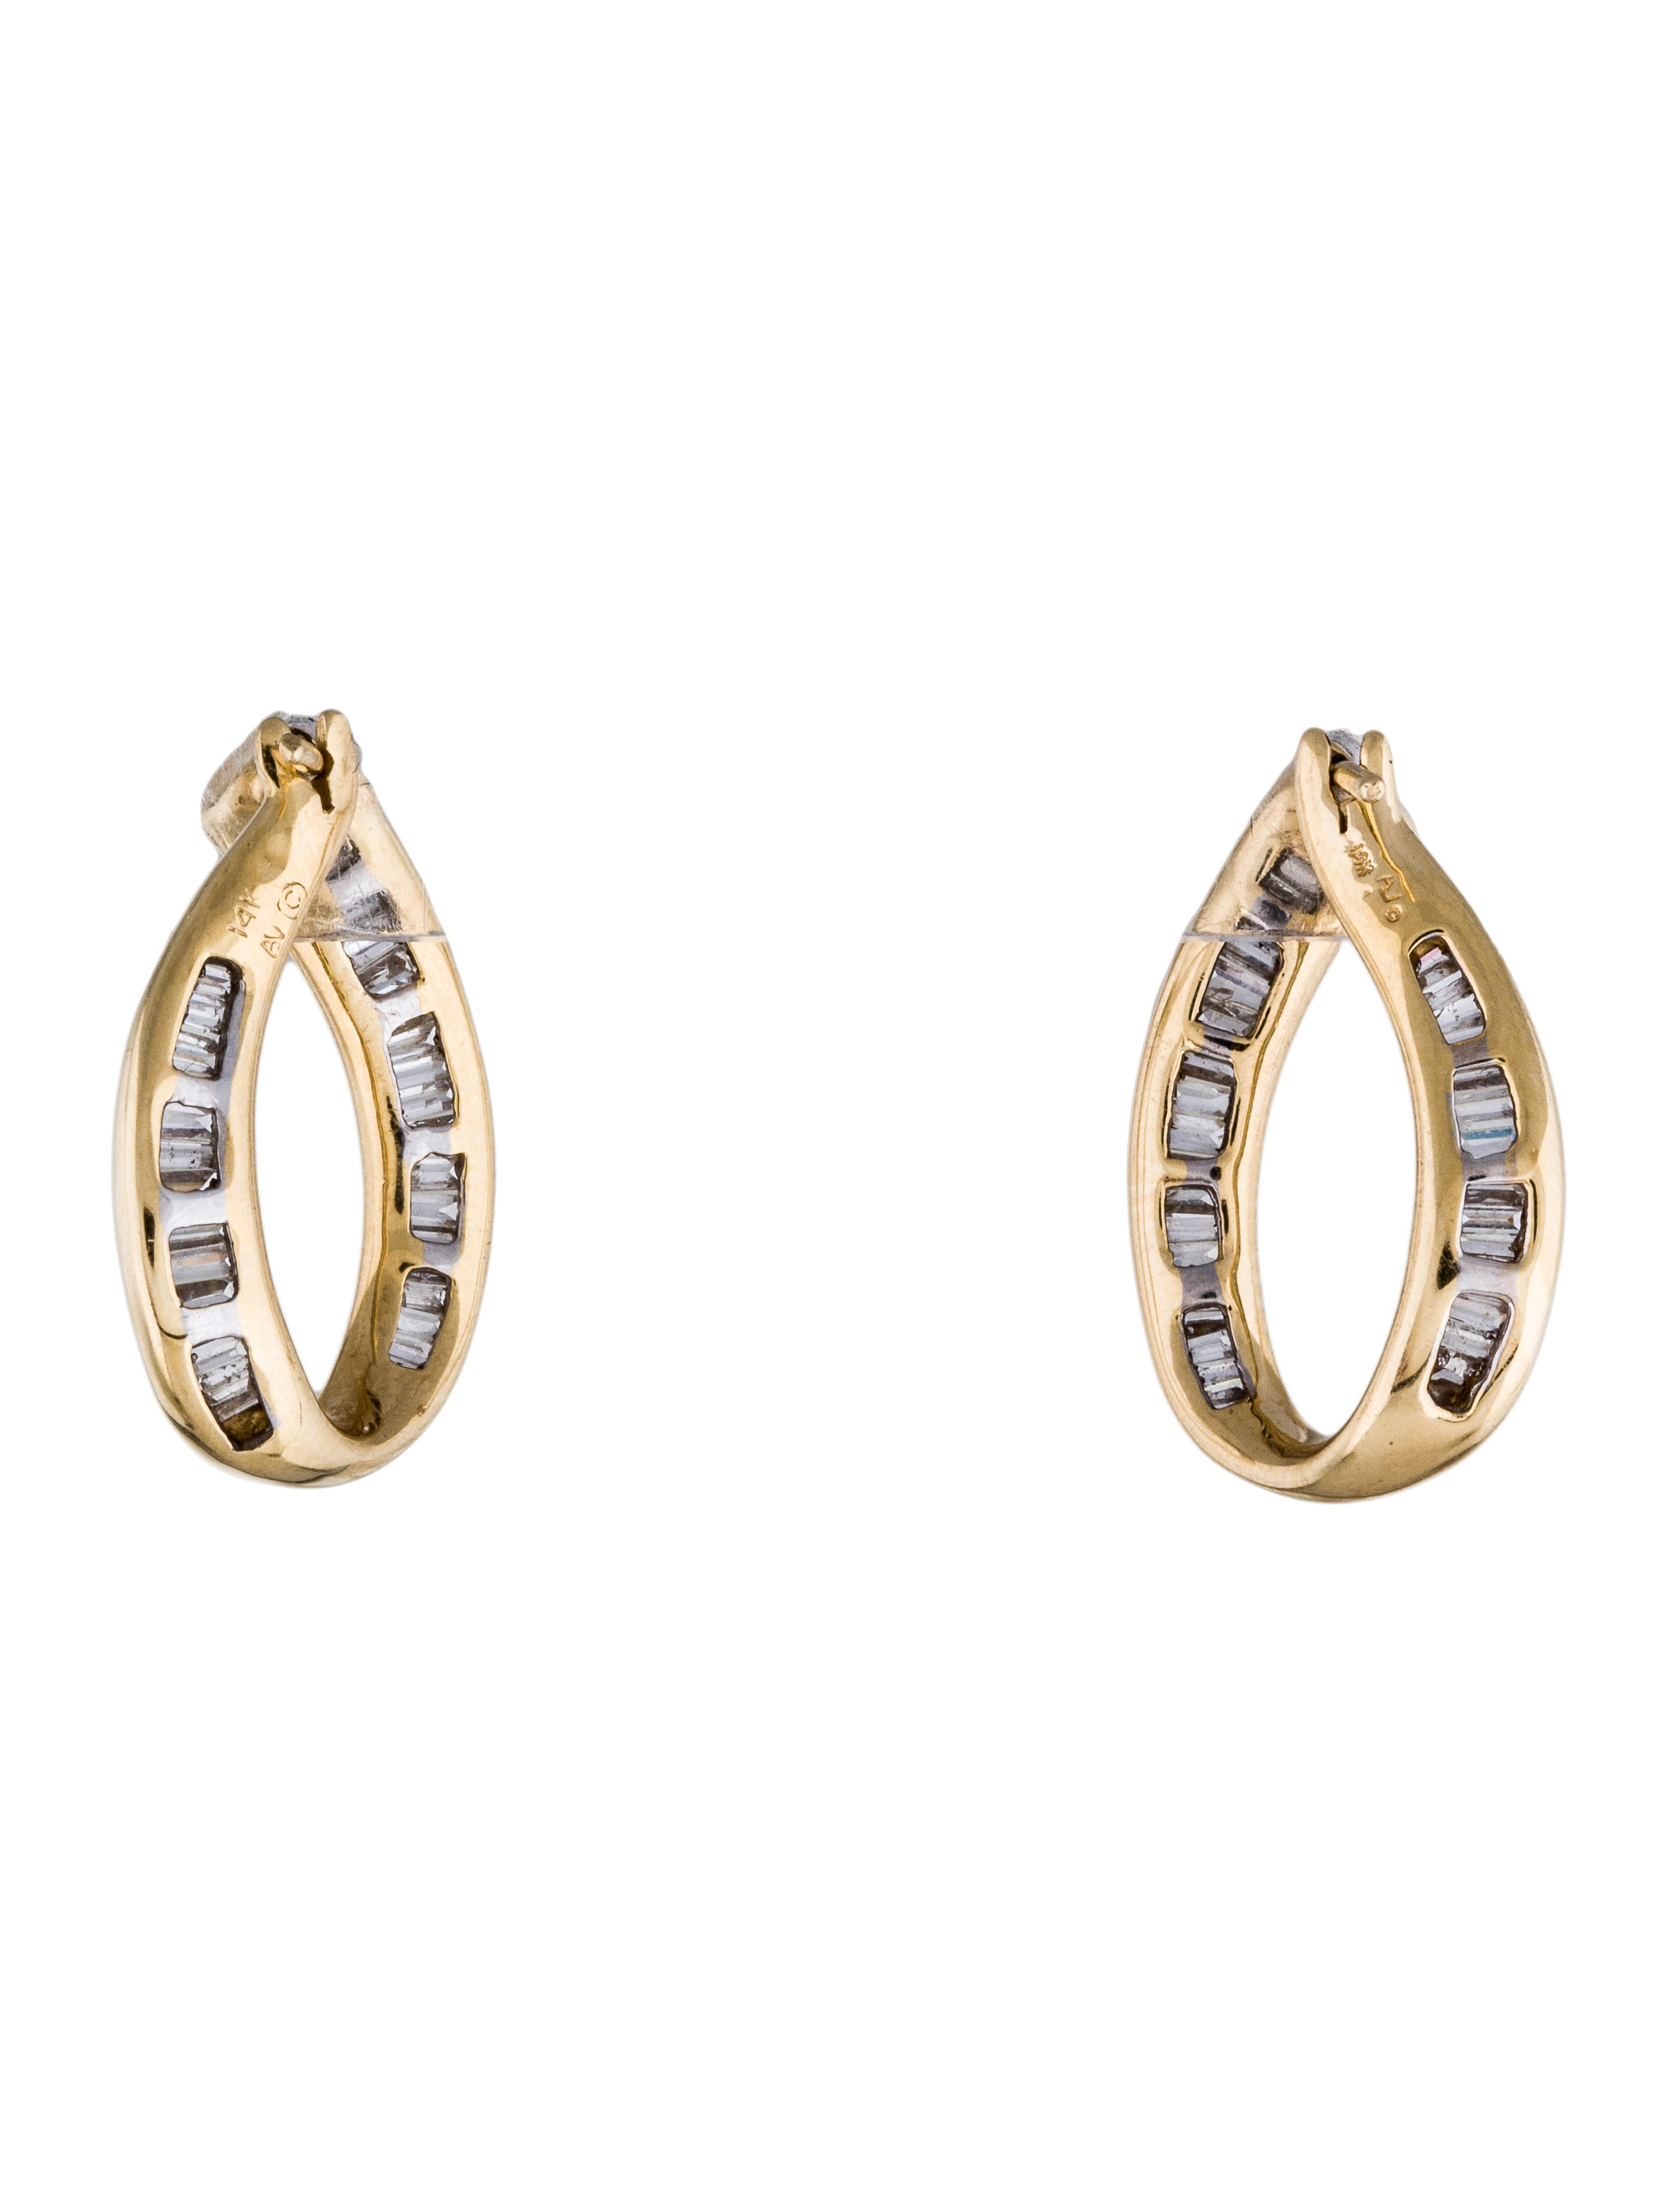 baguette diamonds earrings 14k baguette hoop earrings earrings earri28614 4002